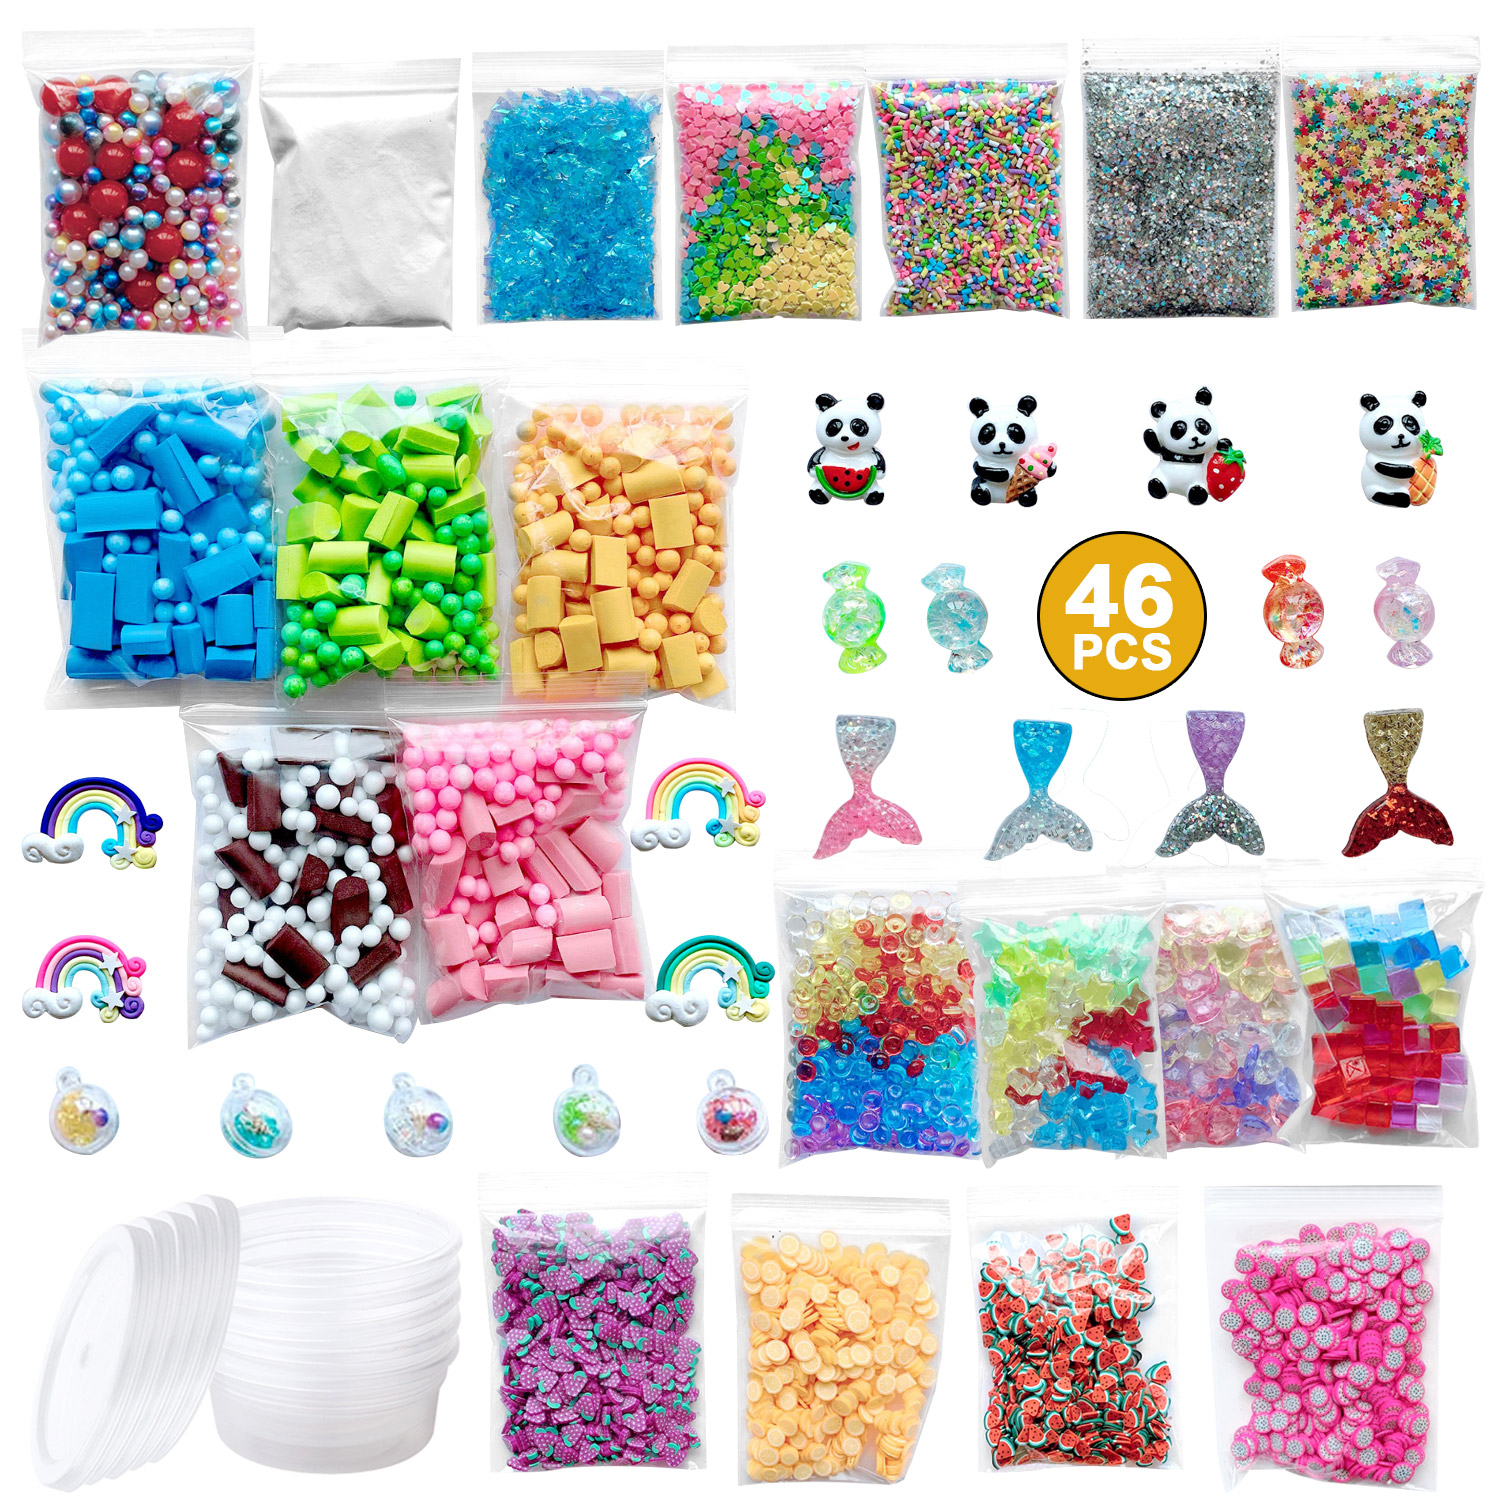 Super Slime Supplies Beads Charms Include Floam Beads Colorful Sugar Paper  Accessories Slime Tools For Slime Making DIY Craft